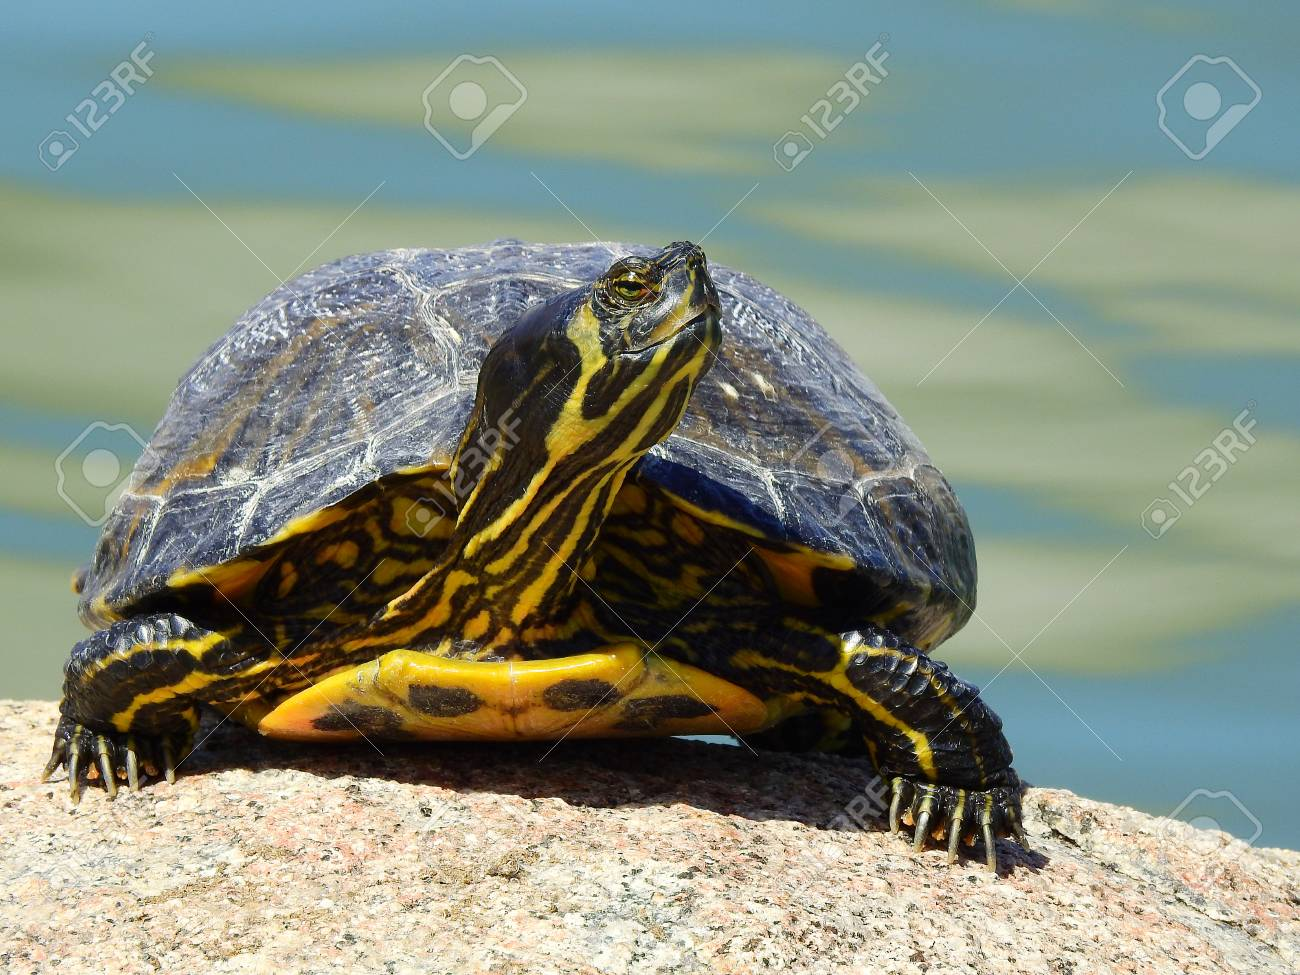 Front Photo Of A Yellow Bellied Slider Turtle Probably Bought As A Pet When It Was A Baby Lives Now With A Thousand More In The Ponds Of The Parks Of Madrid